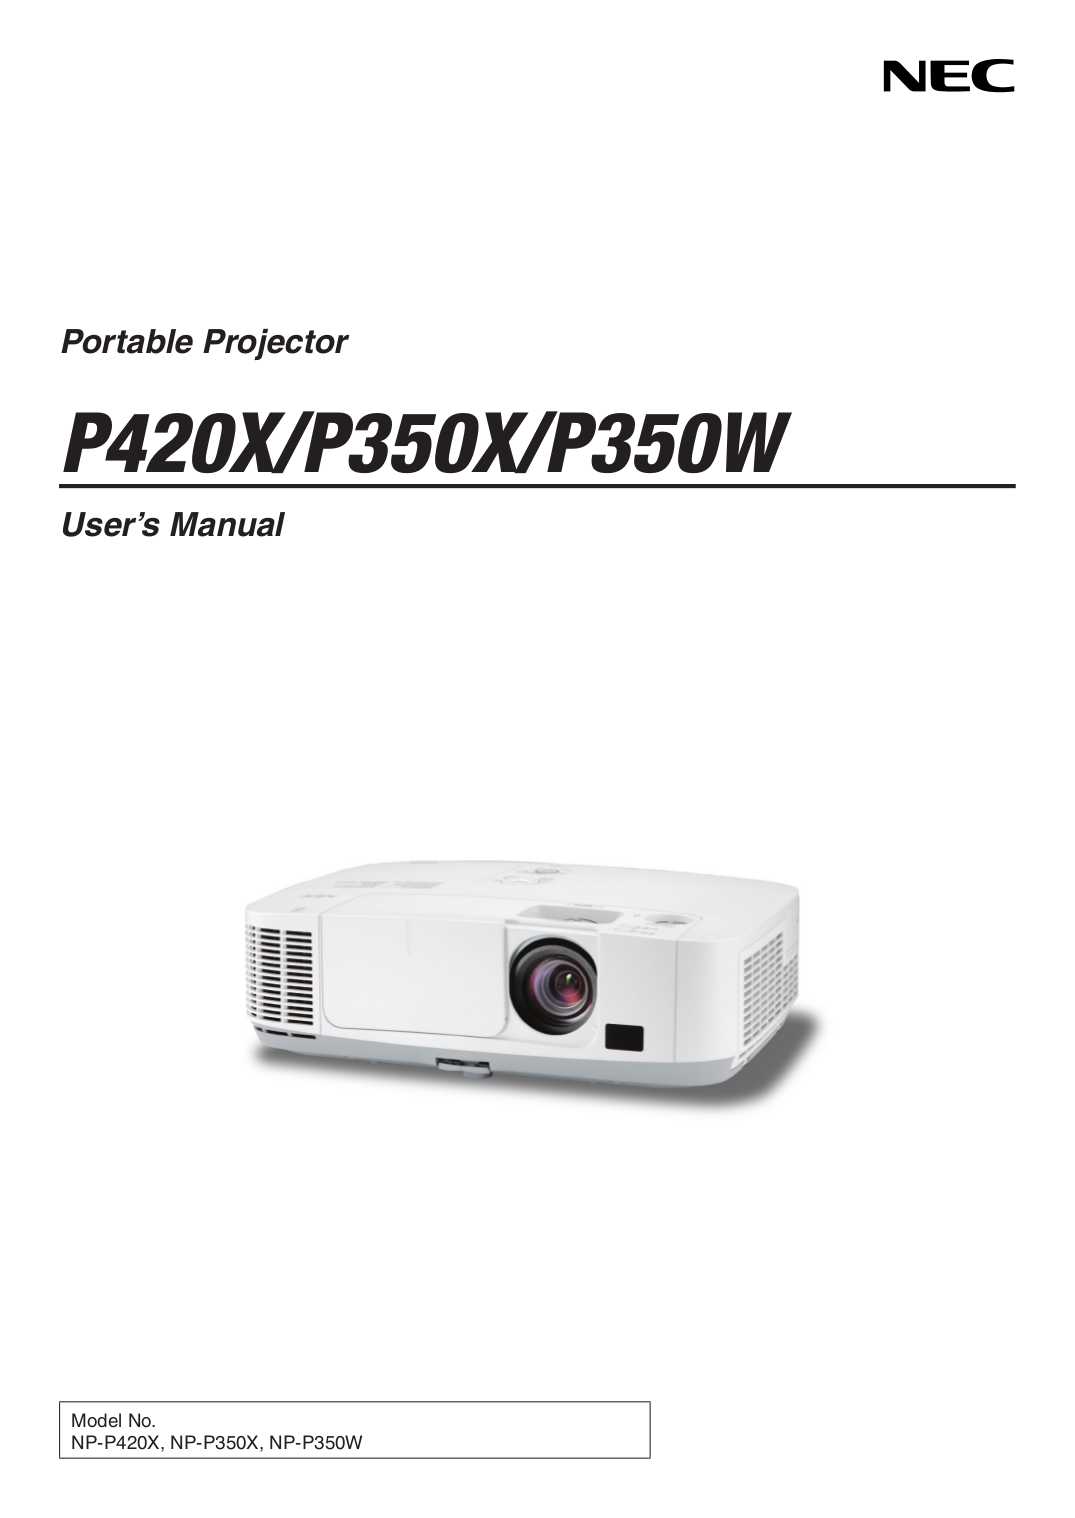 download free pdf for nec np p350w projector manual rh umlib com nec v260 user manual nec v260 user manual